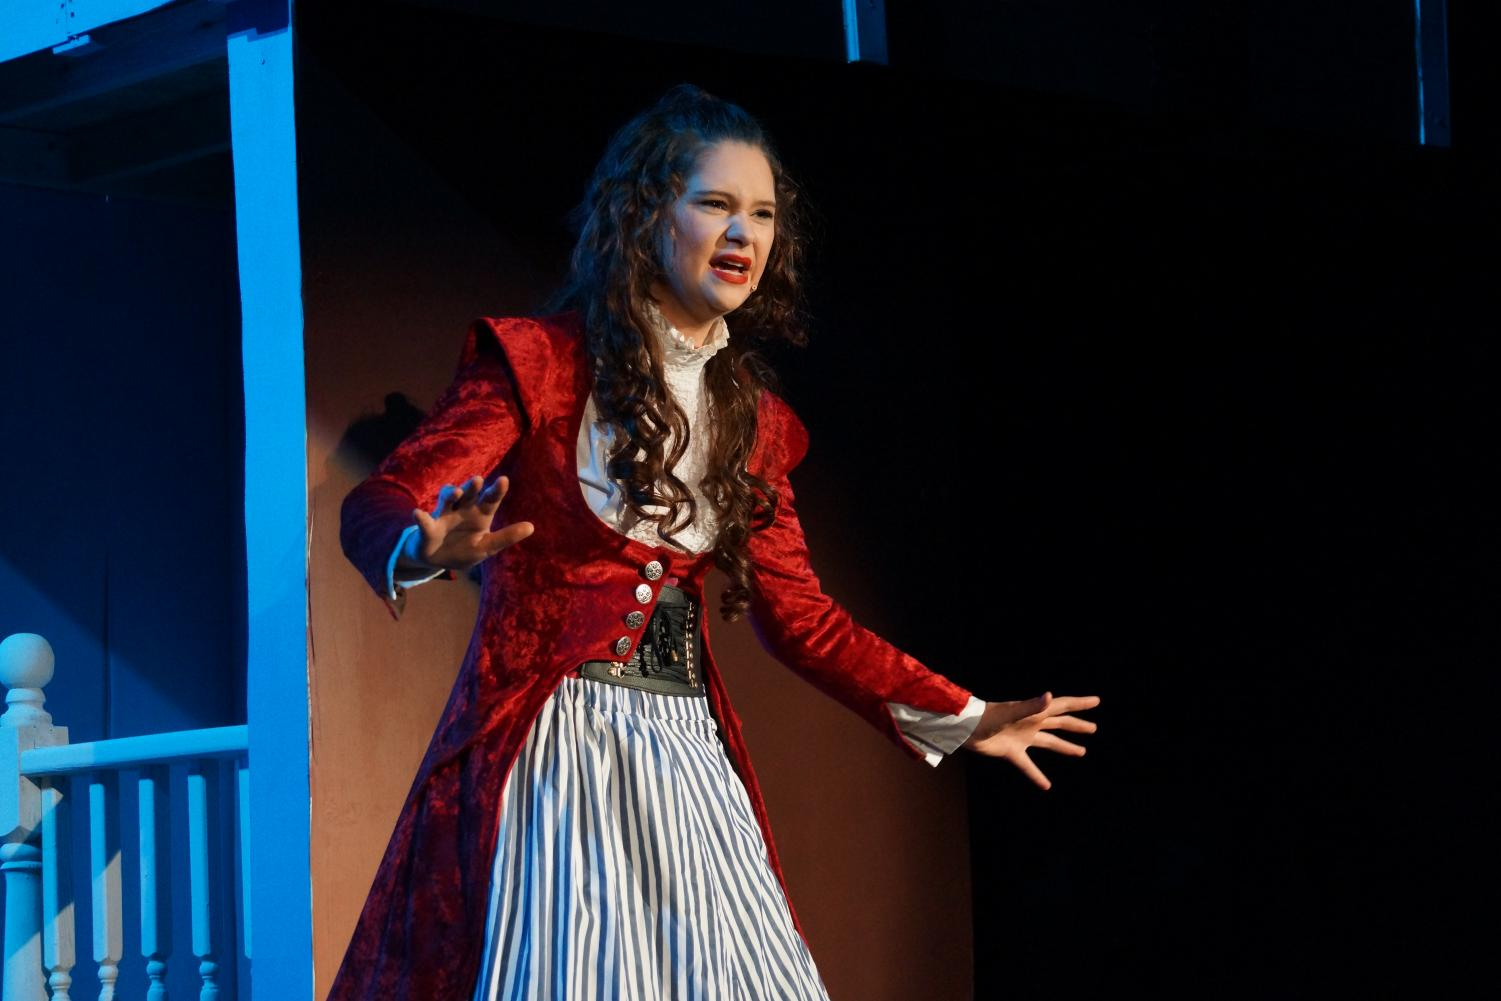 Aylea Cole sings as Josephine March, the protagonist of the musical.